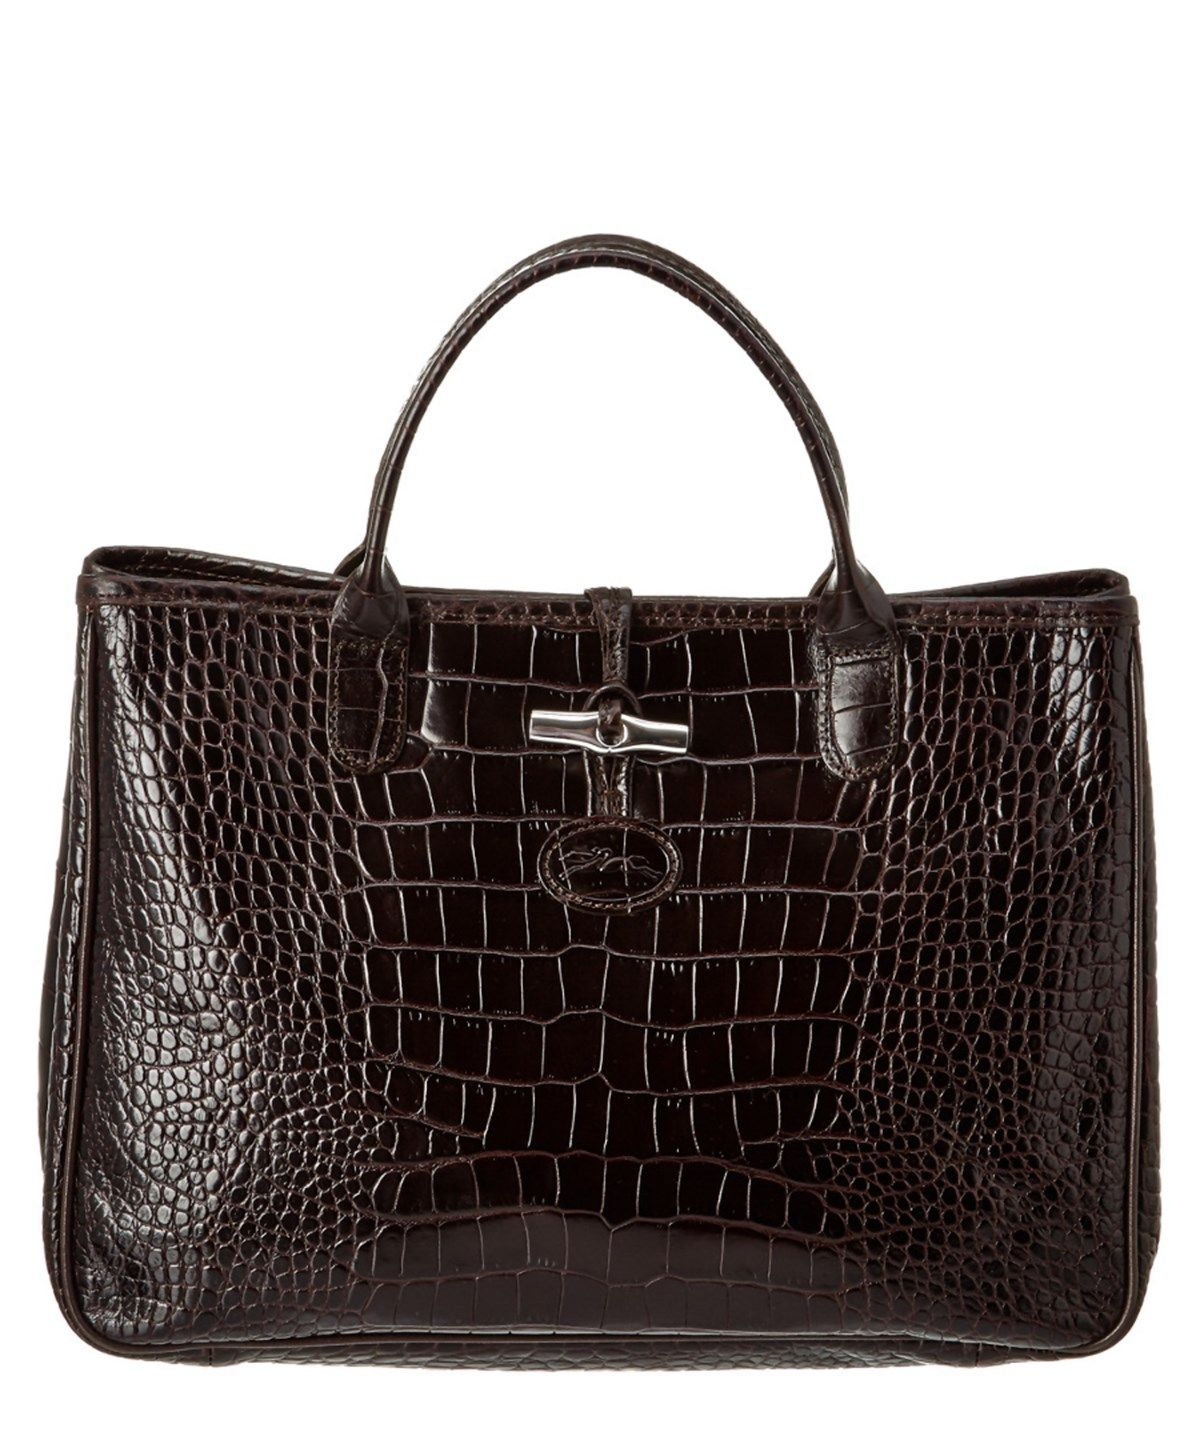 b62eb6a0b74 LONGCHAMP Longchamp Roseau Croco Embossed Leather Tote'. #longchamp #bags # leather #hand bags #tote #lining #